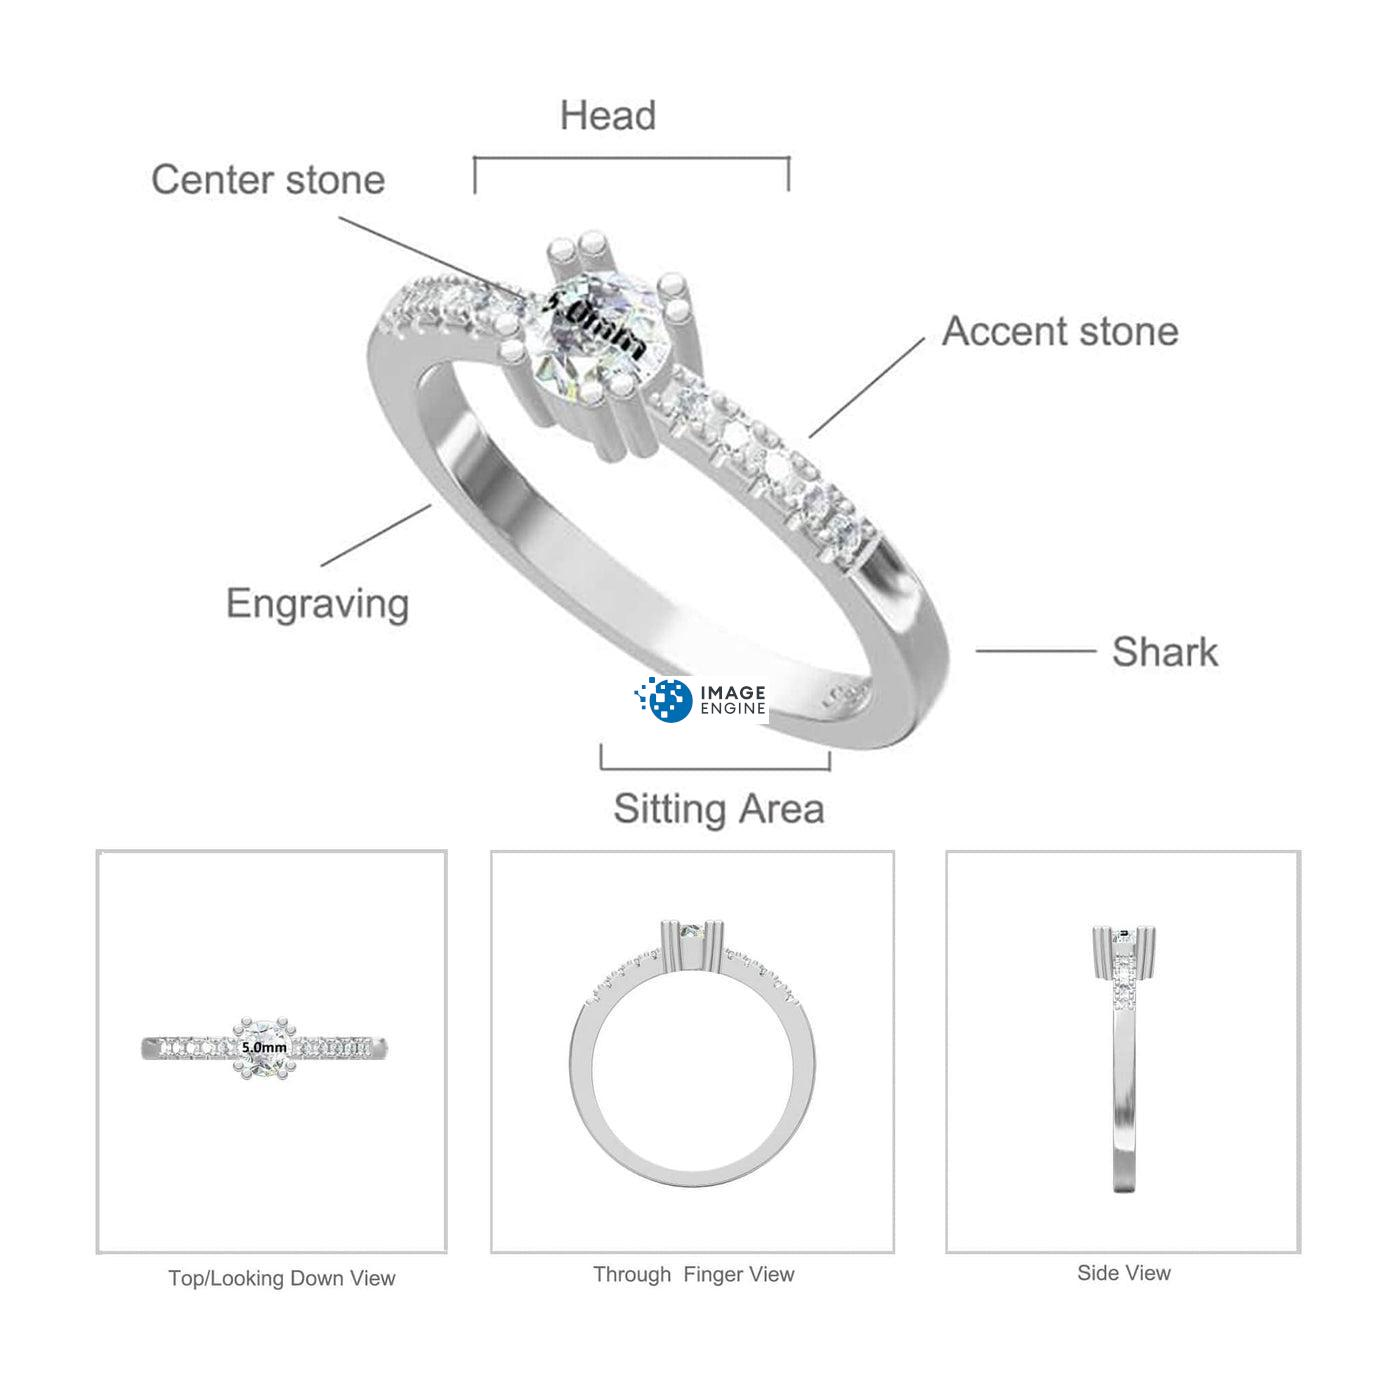 Tianna Sparkle Ring Diagram and Specifications